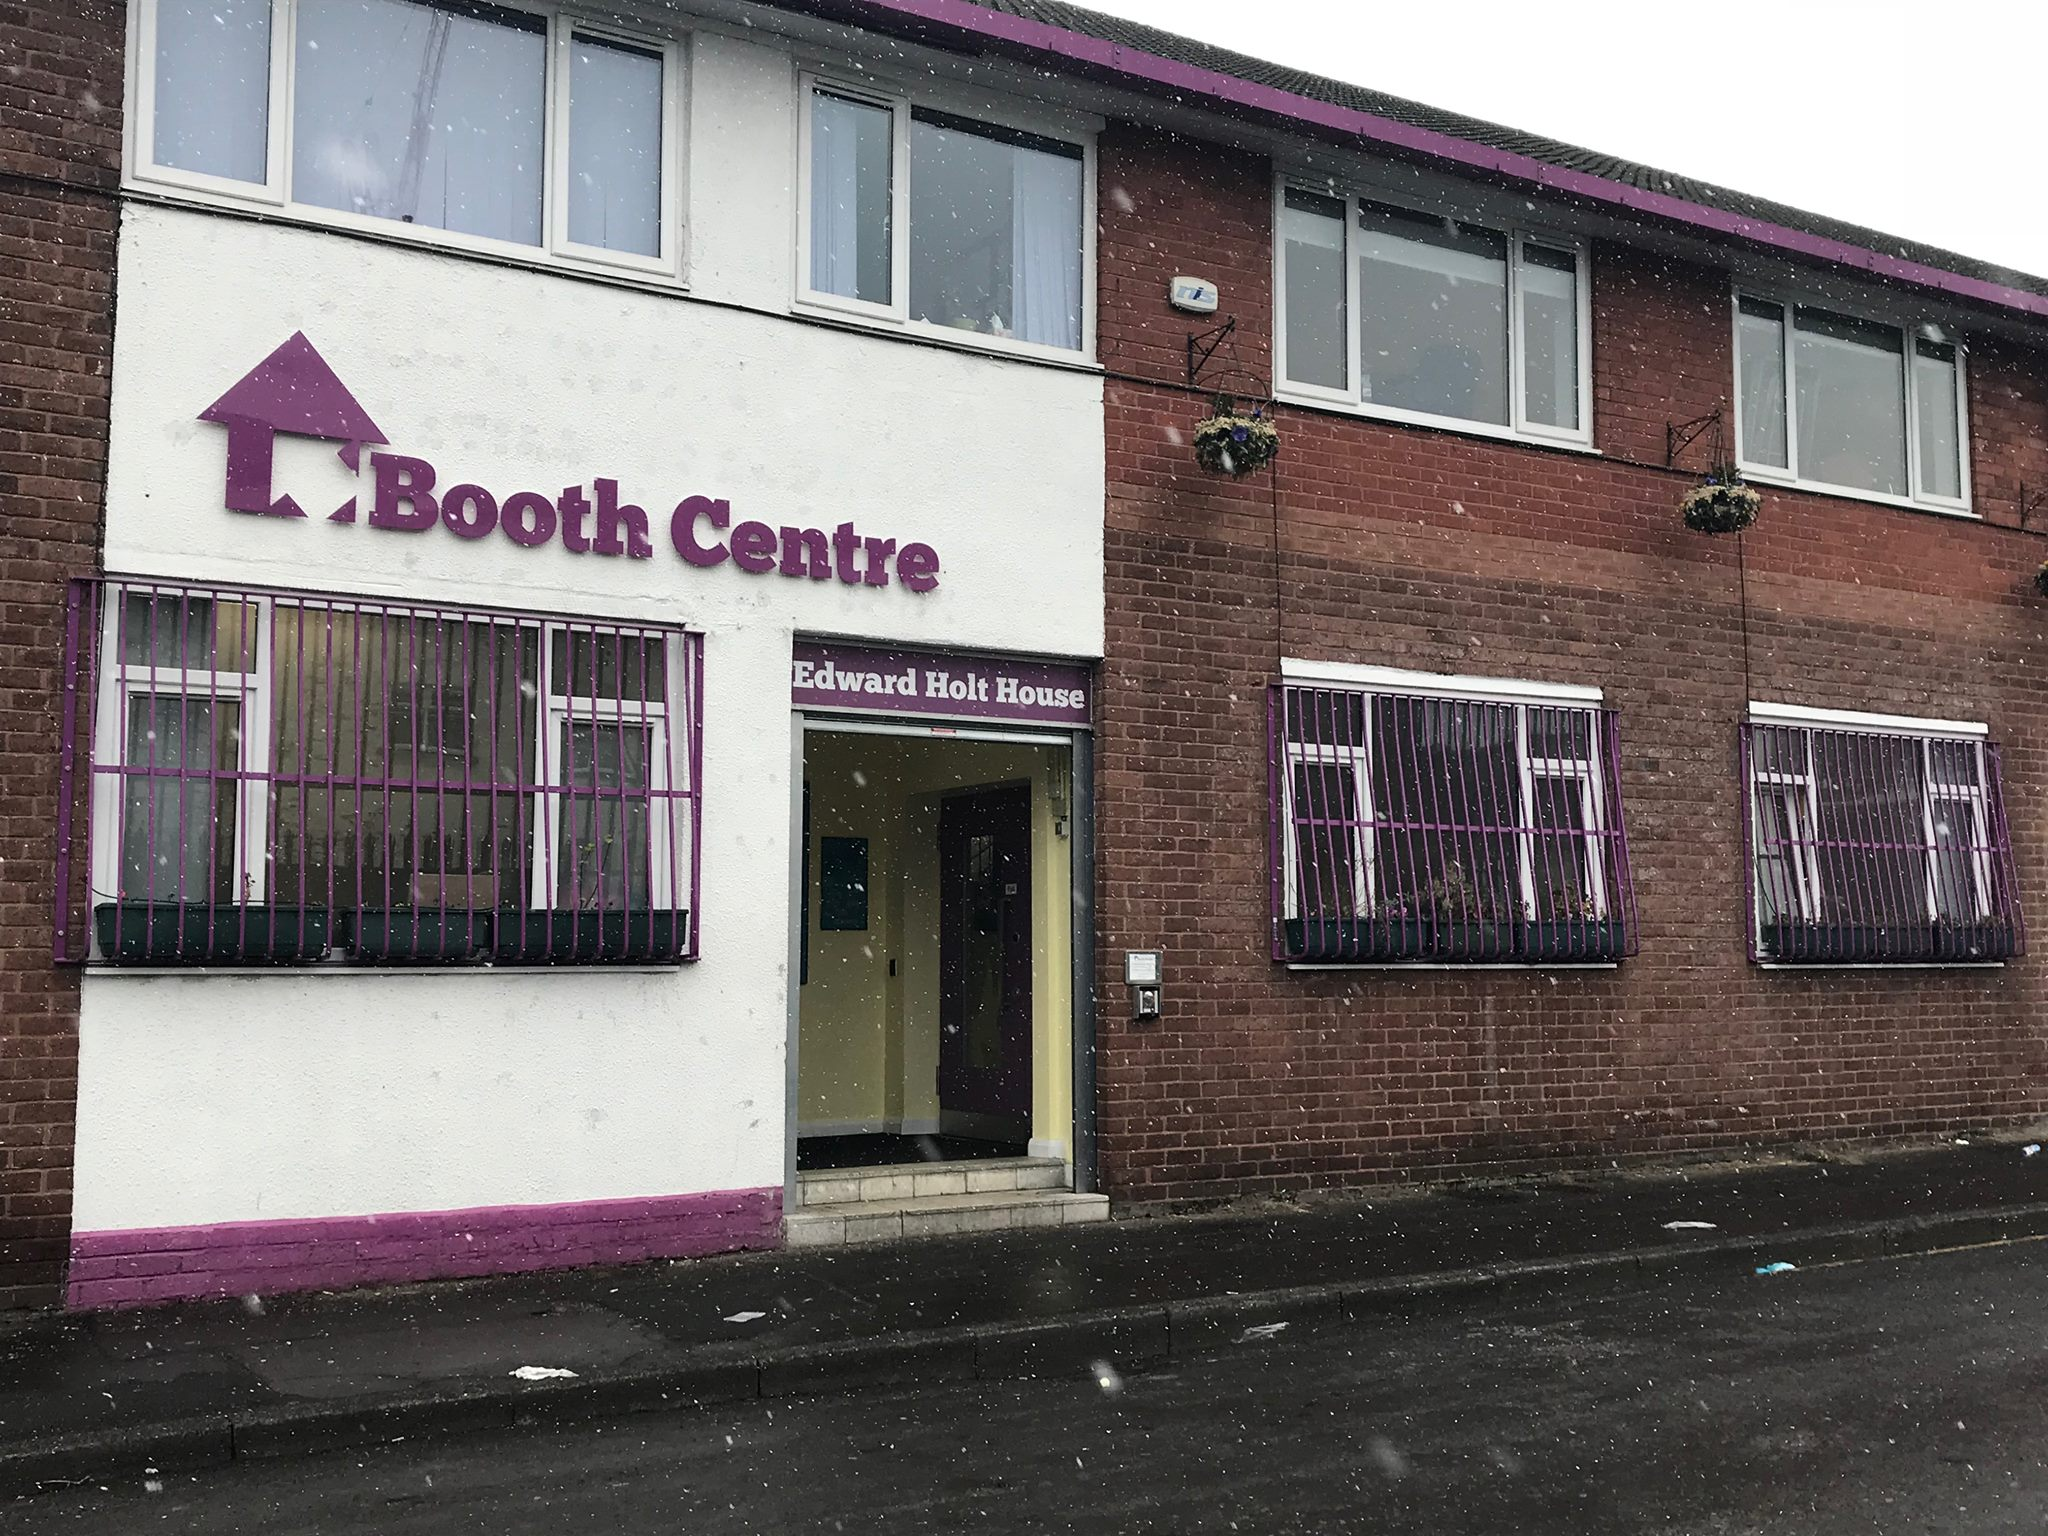 Image of the Booth Centre